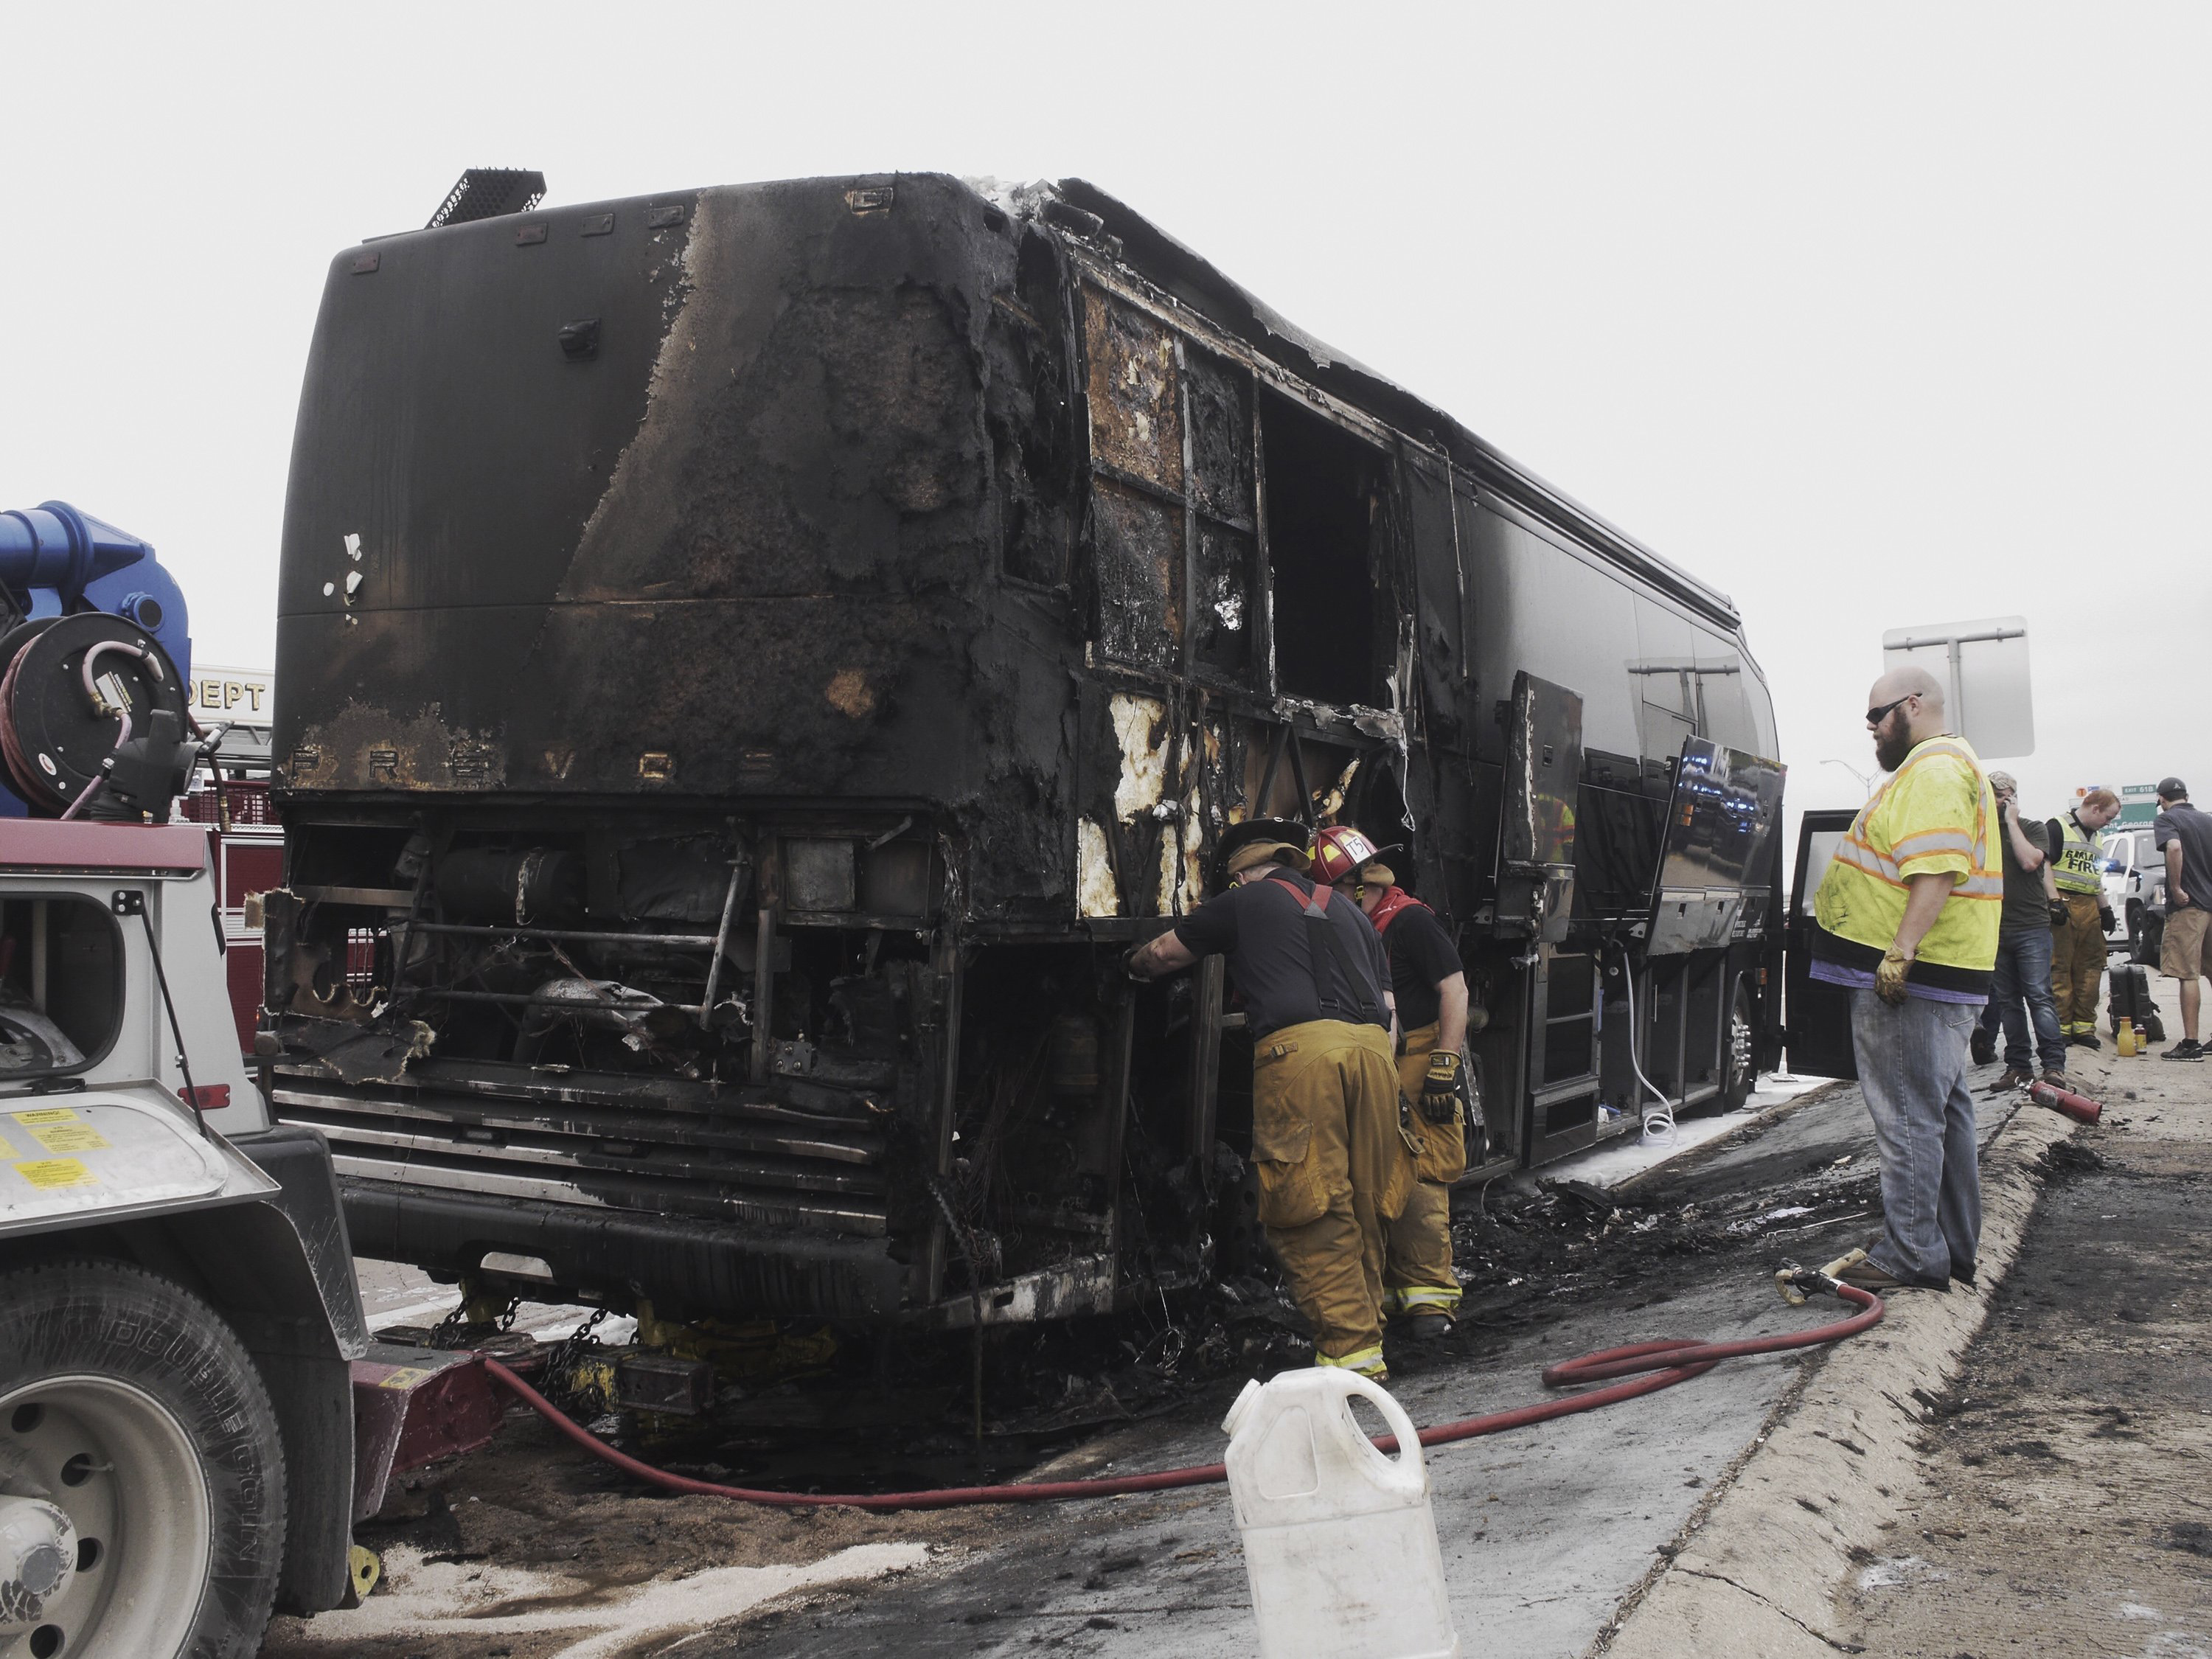 Firemen look at the damage after a fire on county music group Lady Antebellum's bus on eastbound I-30 in Garland, Texas, April 16, 2015.